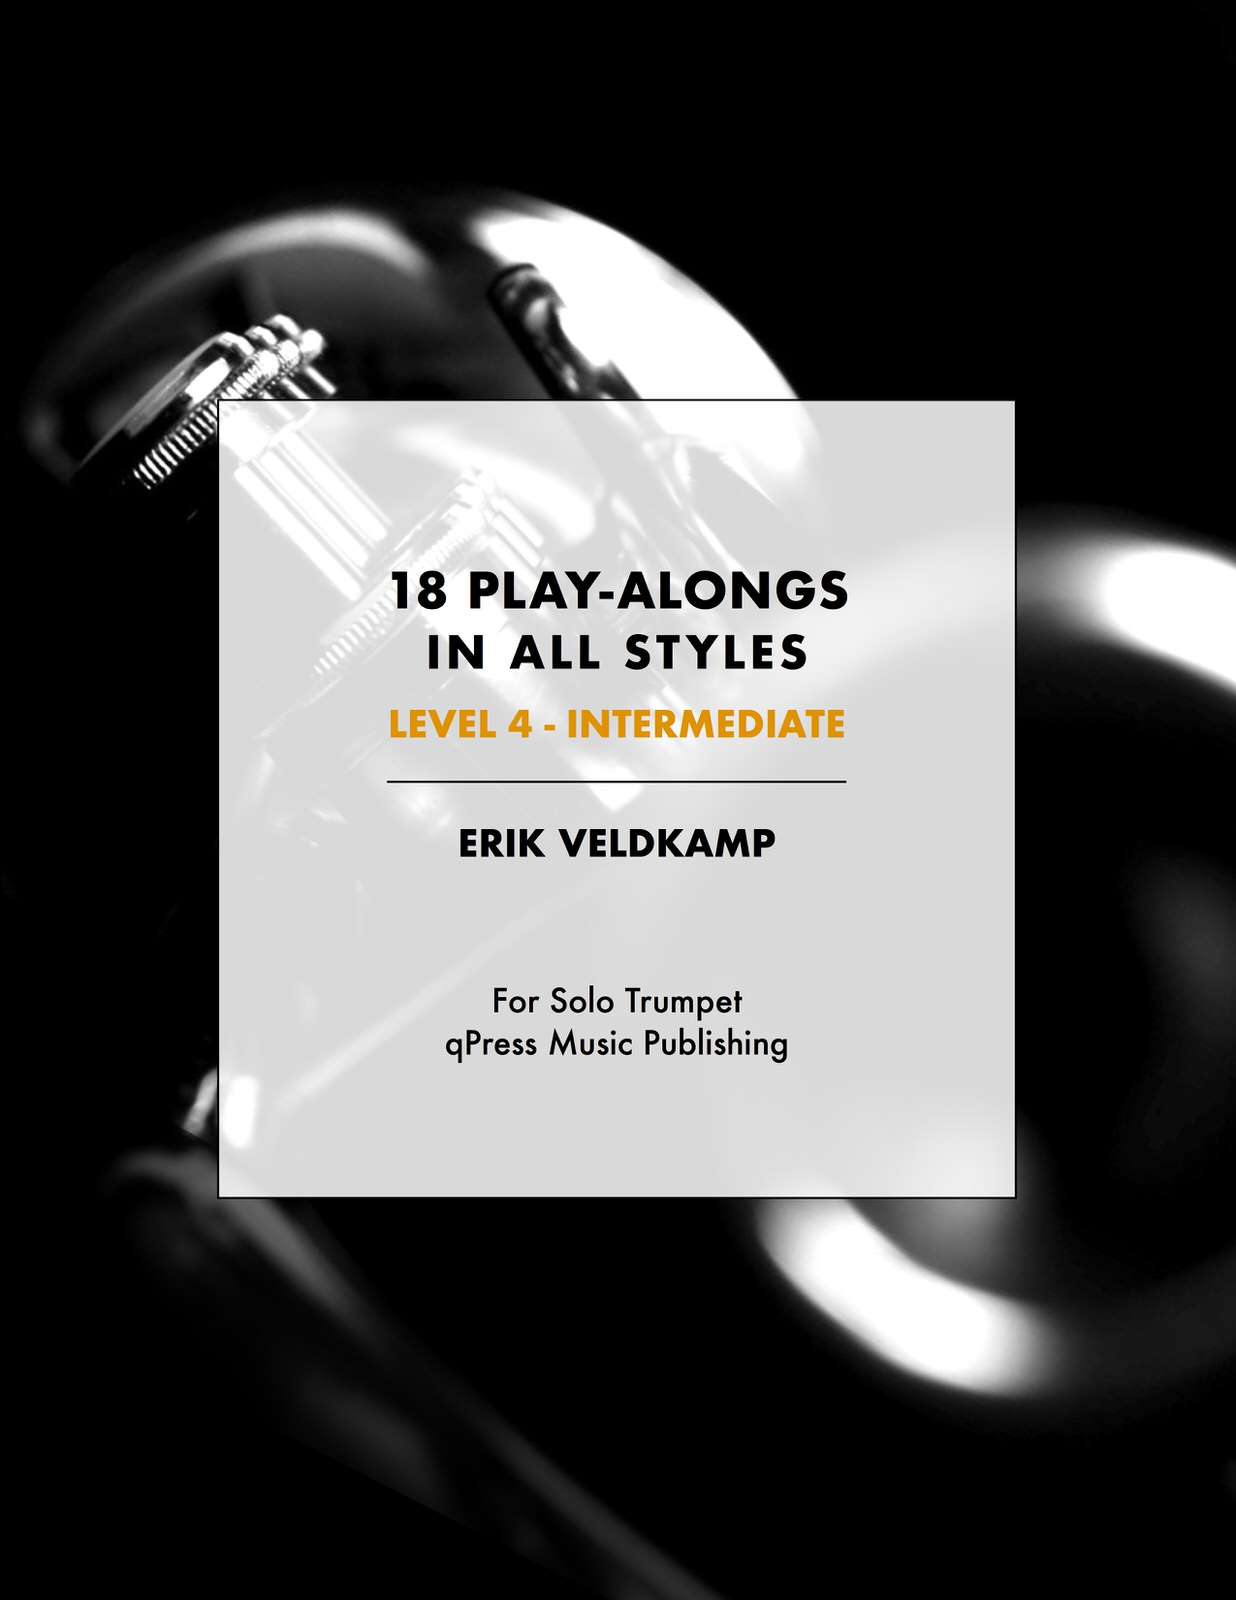 18-Play-Alongs-in-All-Styles-Level-4-Intermediate-p01